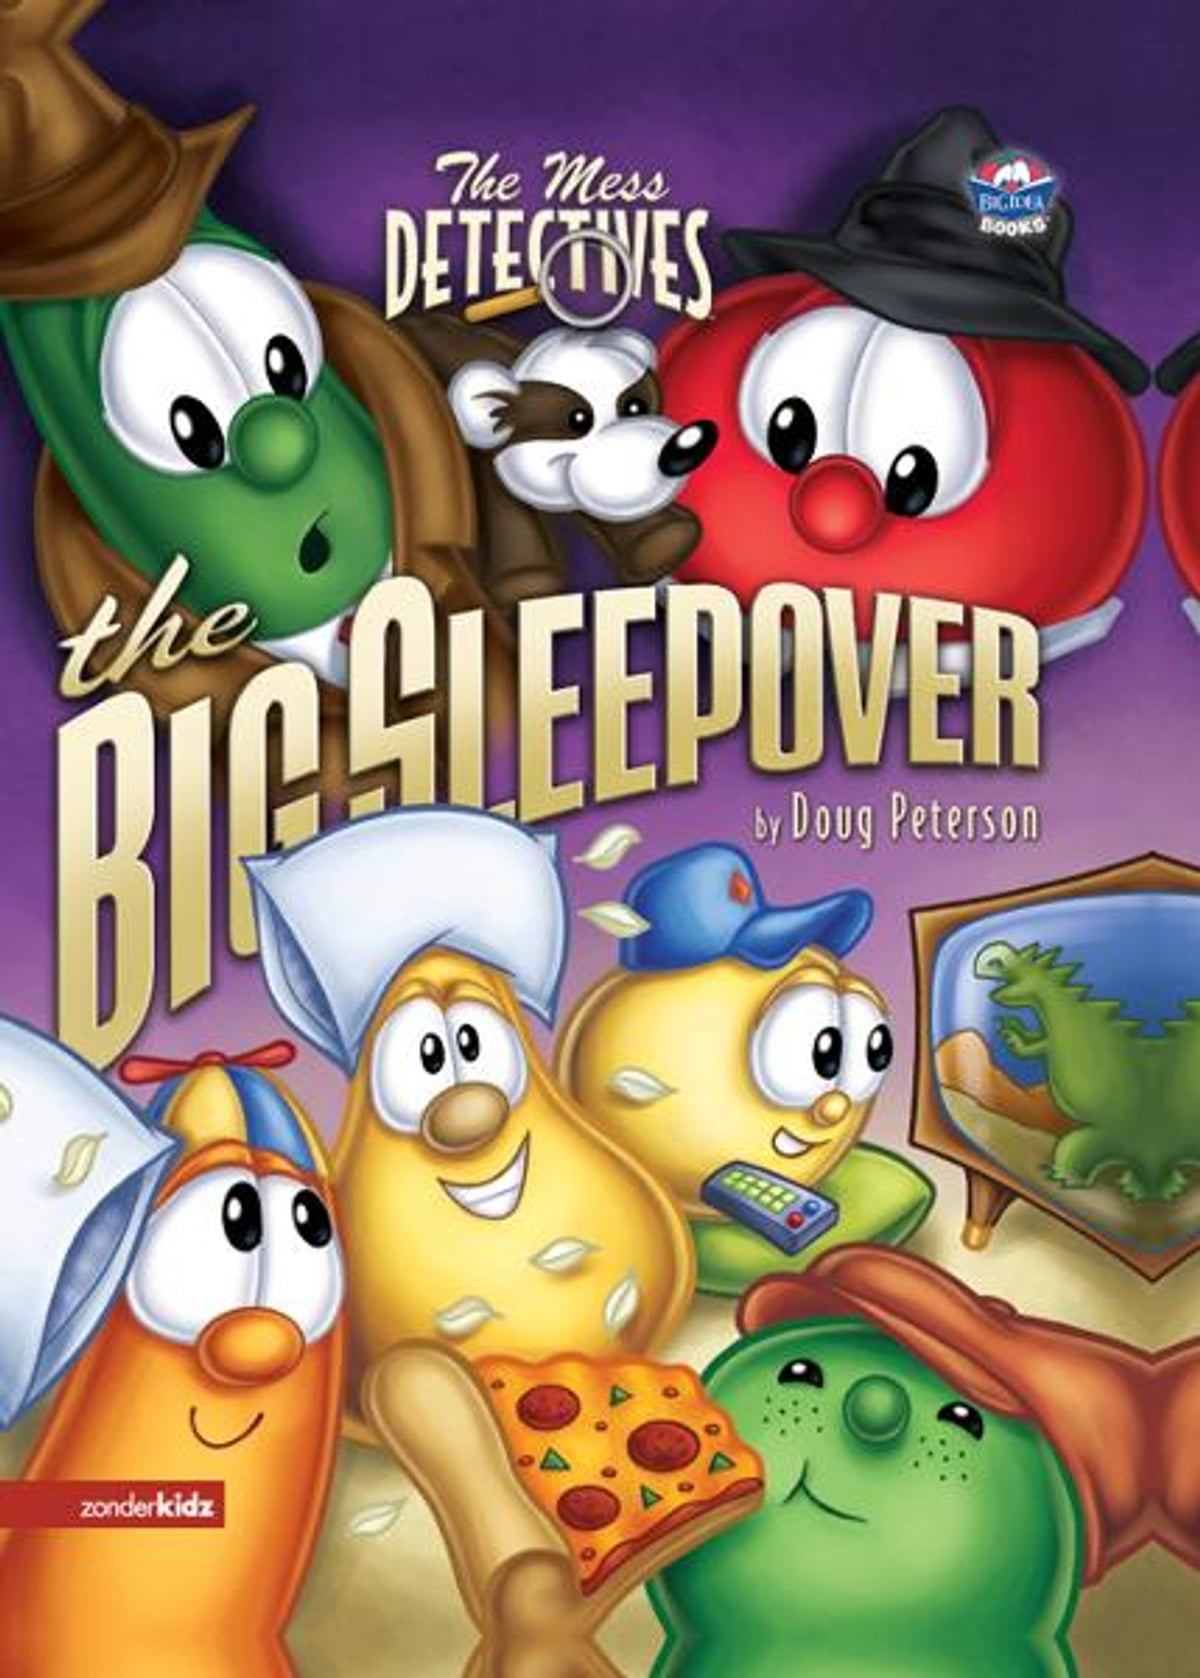 the mess detectives the big sleepover ebook by doug peterson